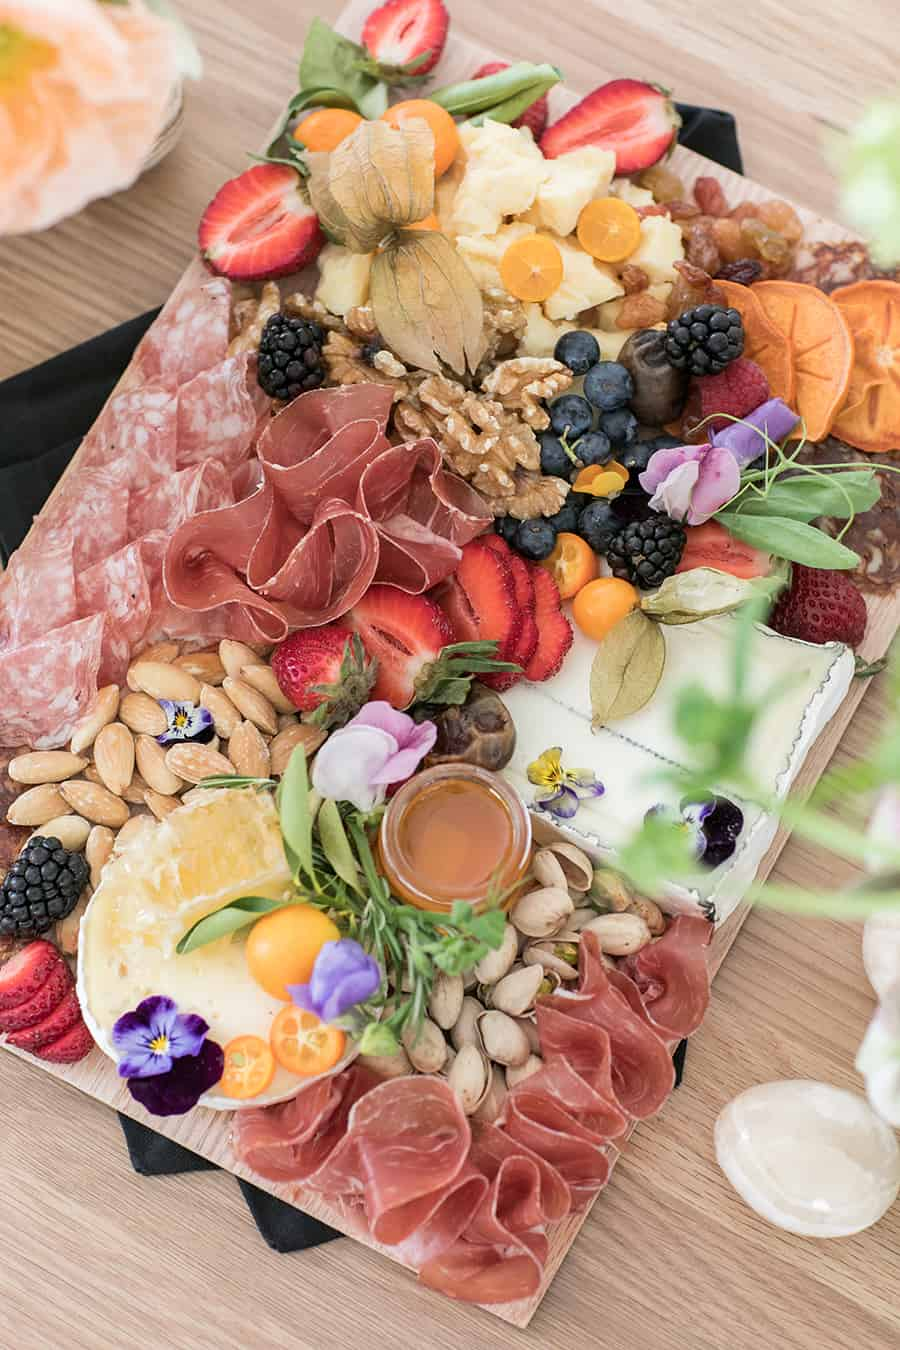 Charcuterie platter with fruit, cheese, nuts, almonds, meat and strawberries